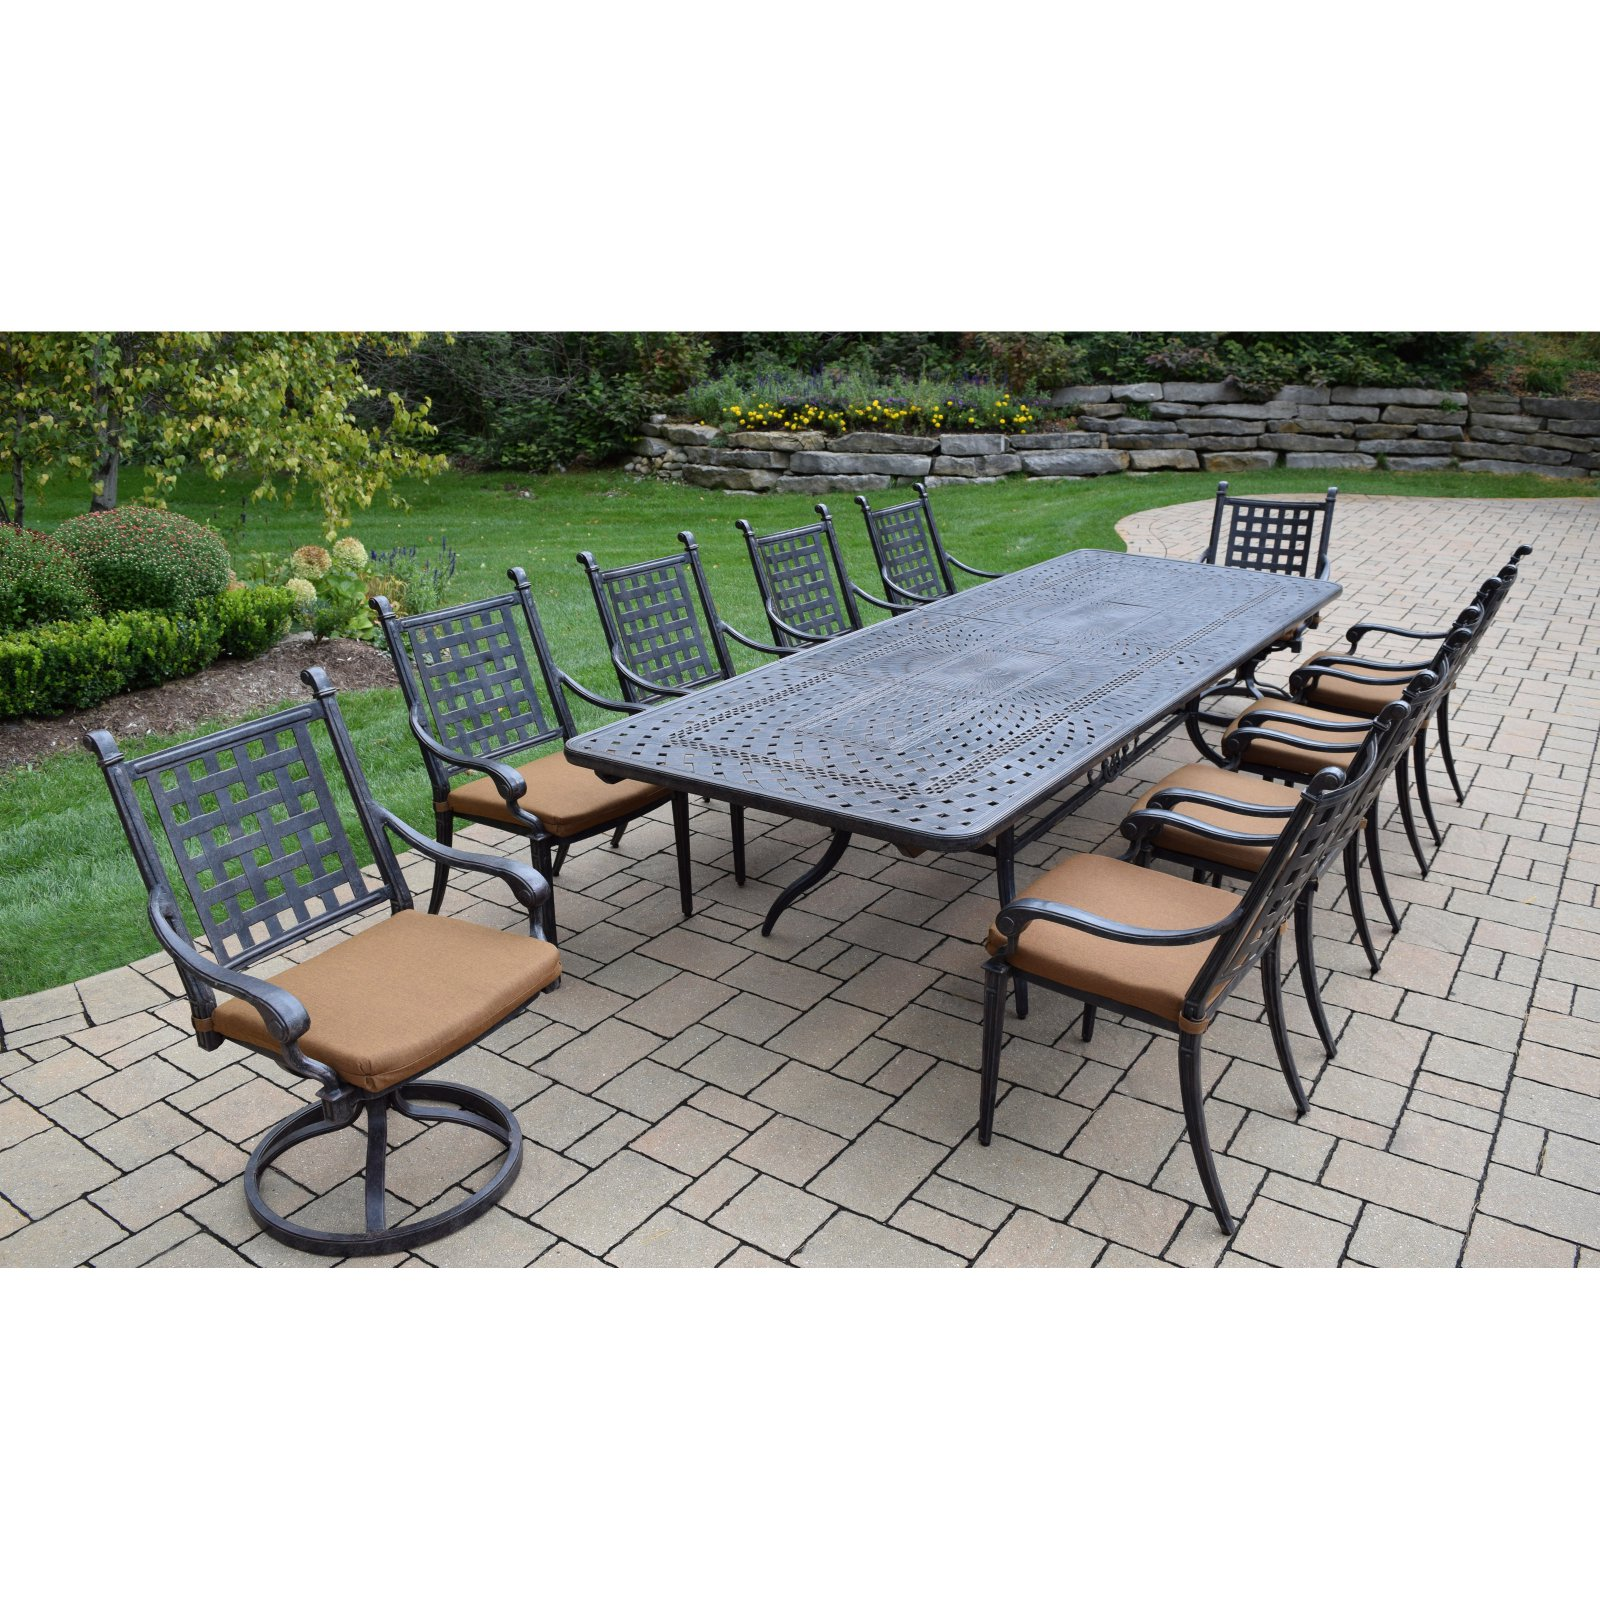 Oakland Living Belmont 11 Piece Extendable Patio Dining Room Set by Oakland Living